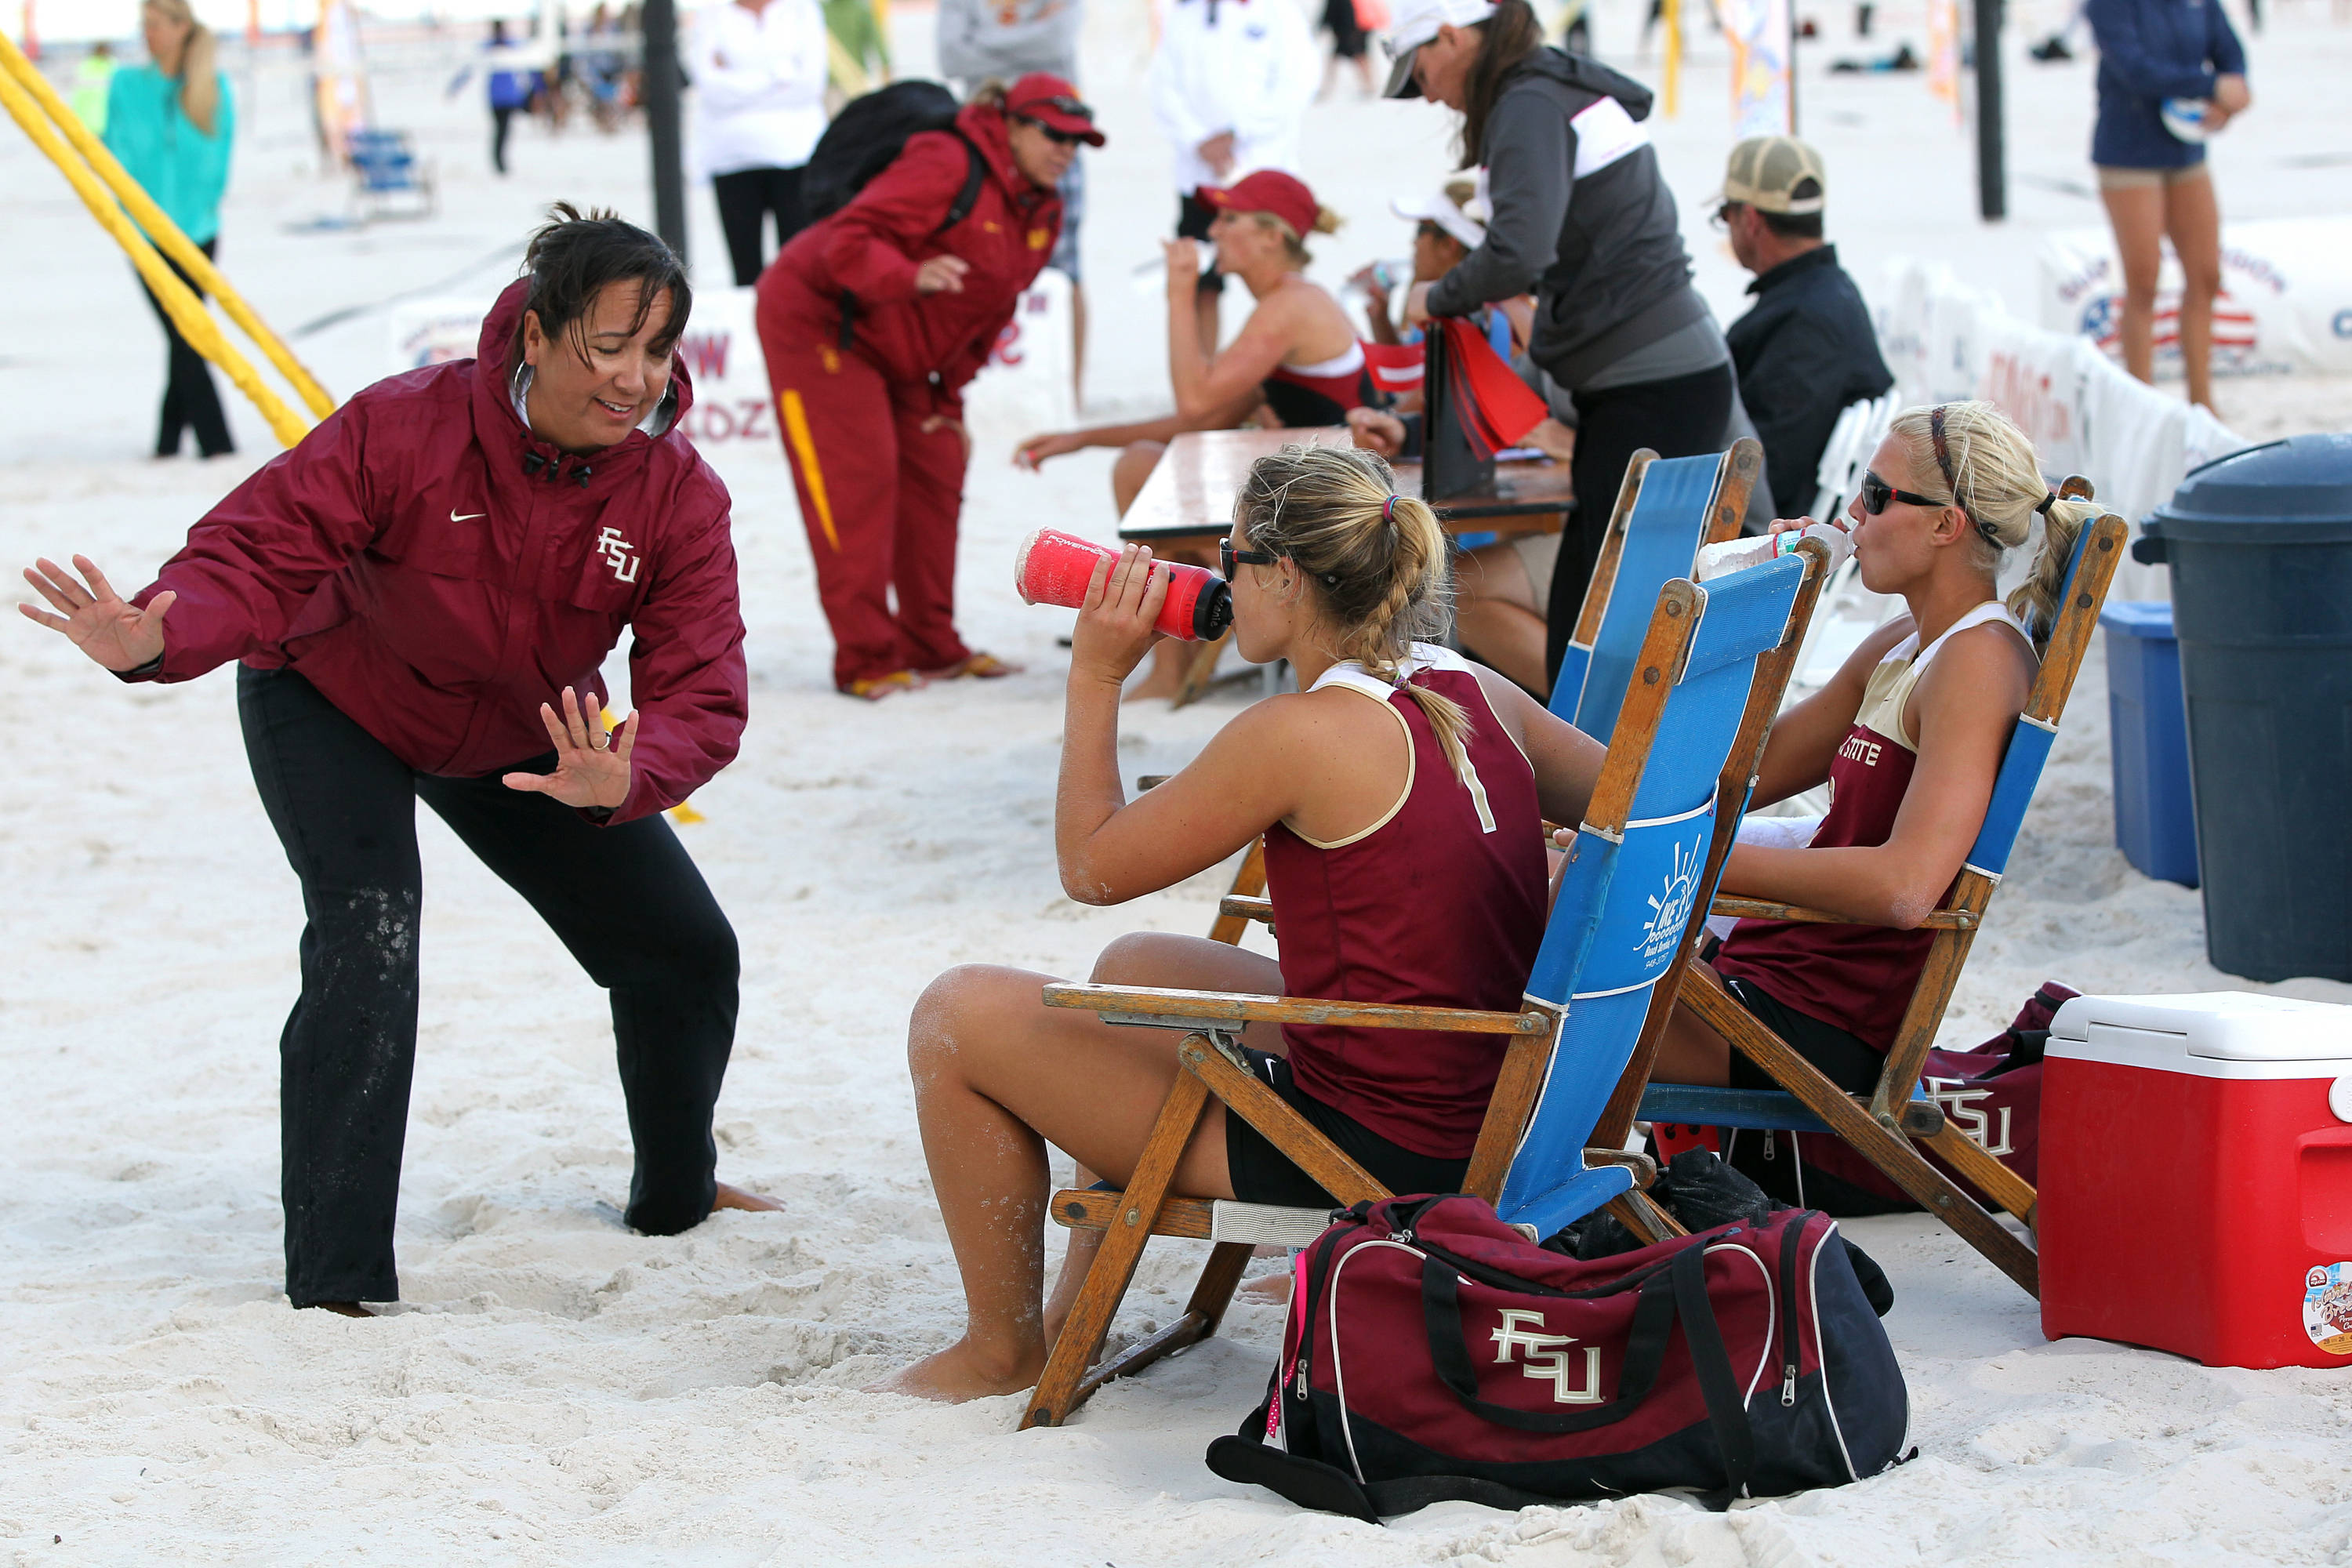 Head Coach Danalee Corso with demonstrating instructions to Melanie Pavels and Julie Brown, AVCA Collegiate Sand Volleyball National  Championships - Pairs,  Gulf Shores, Alabama, 05/05/13 . (Photo by Steve Musco)